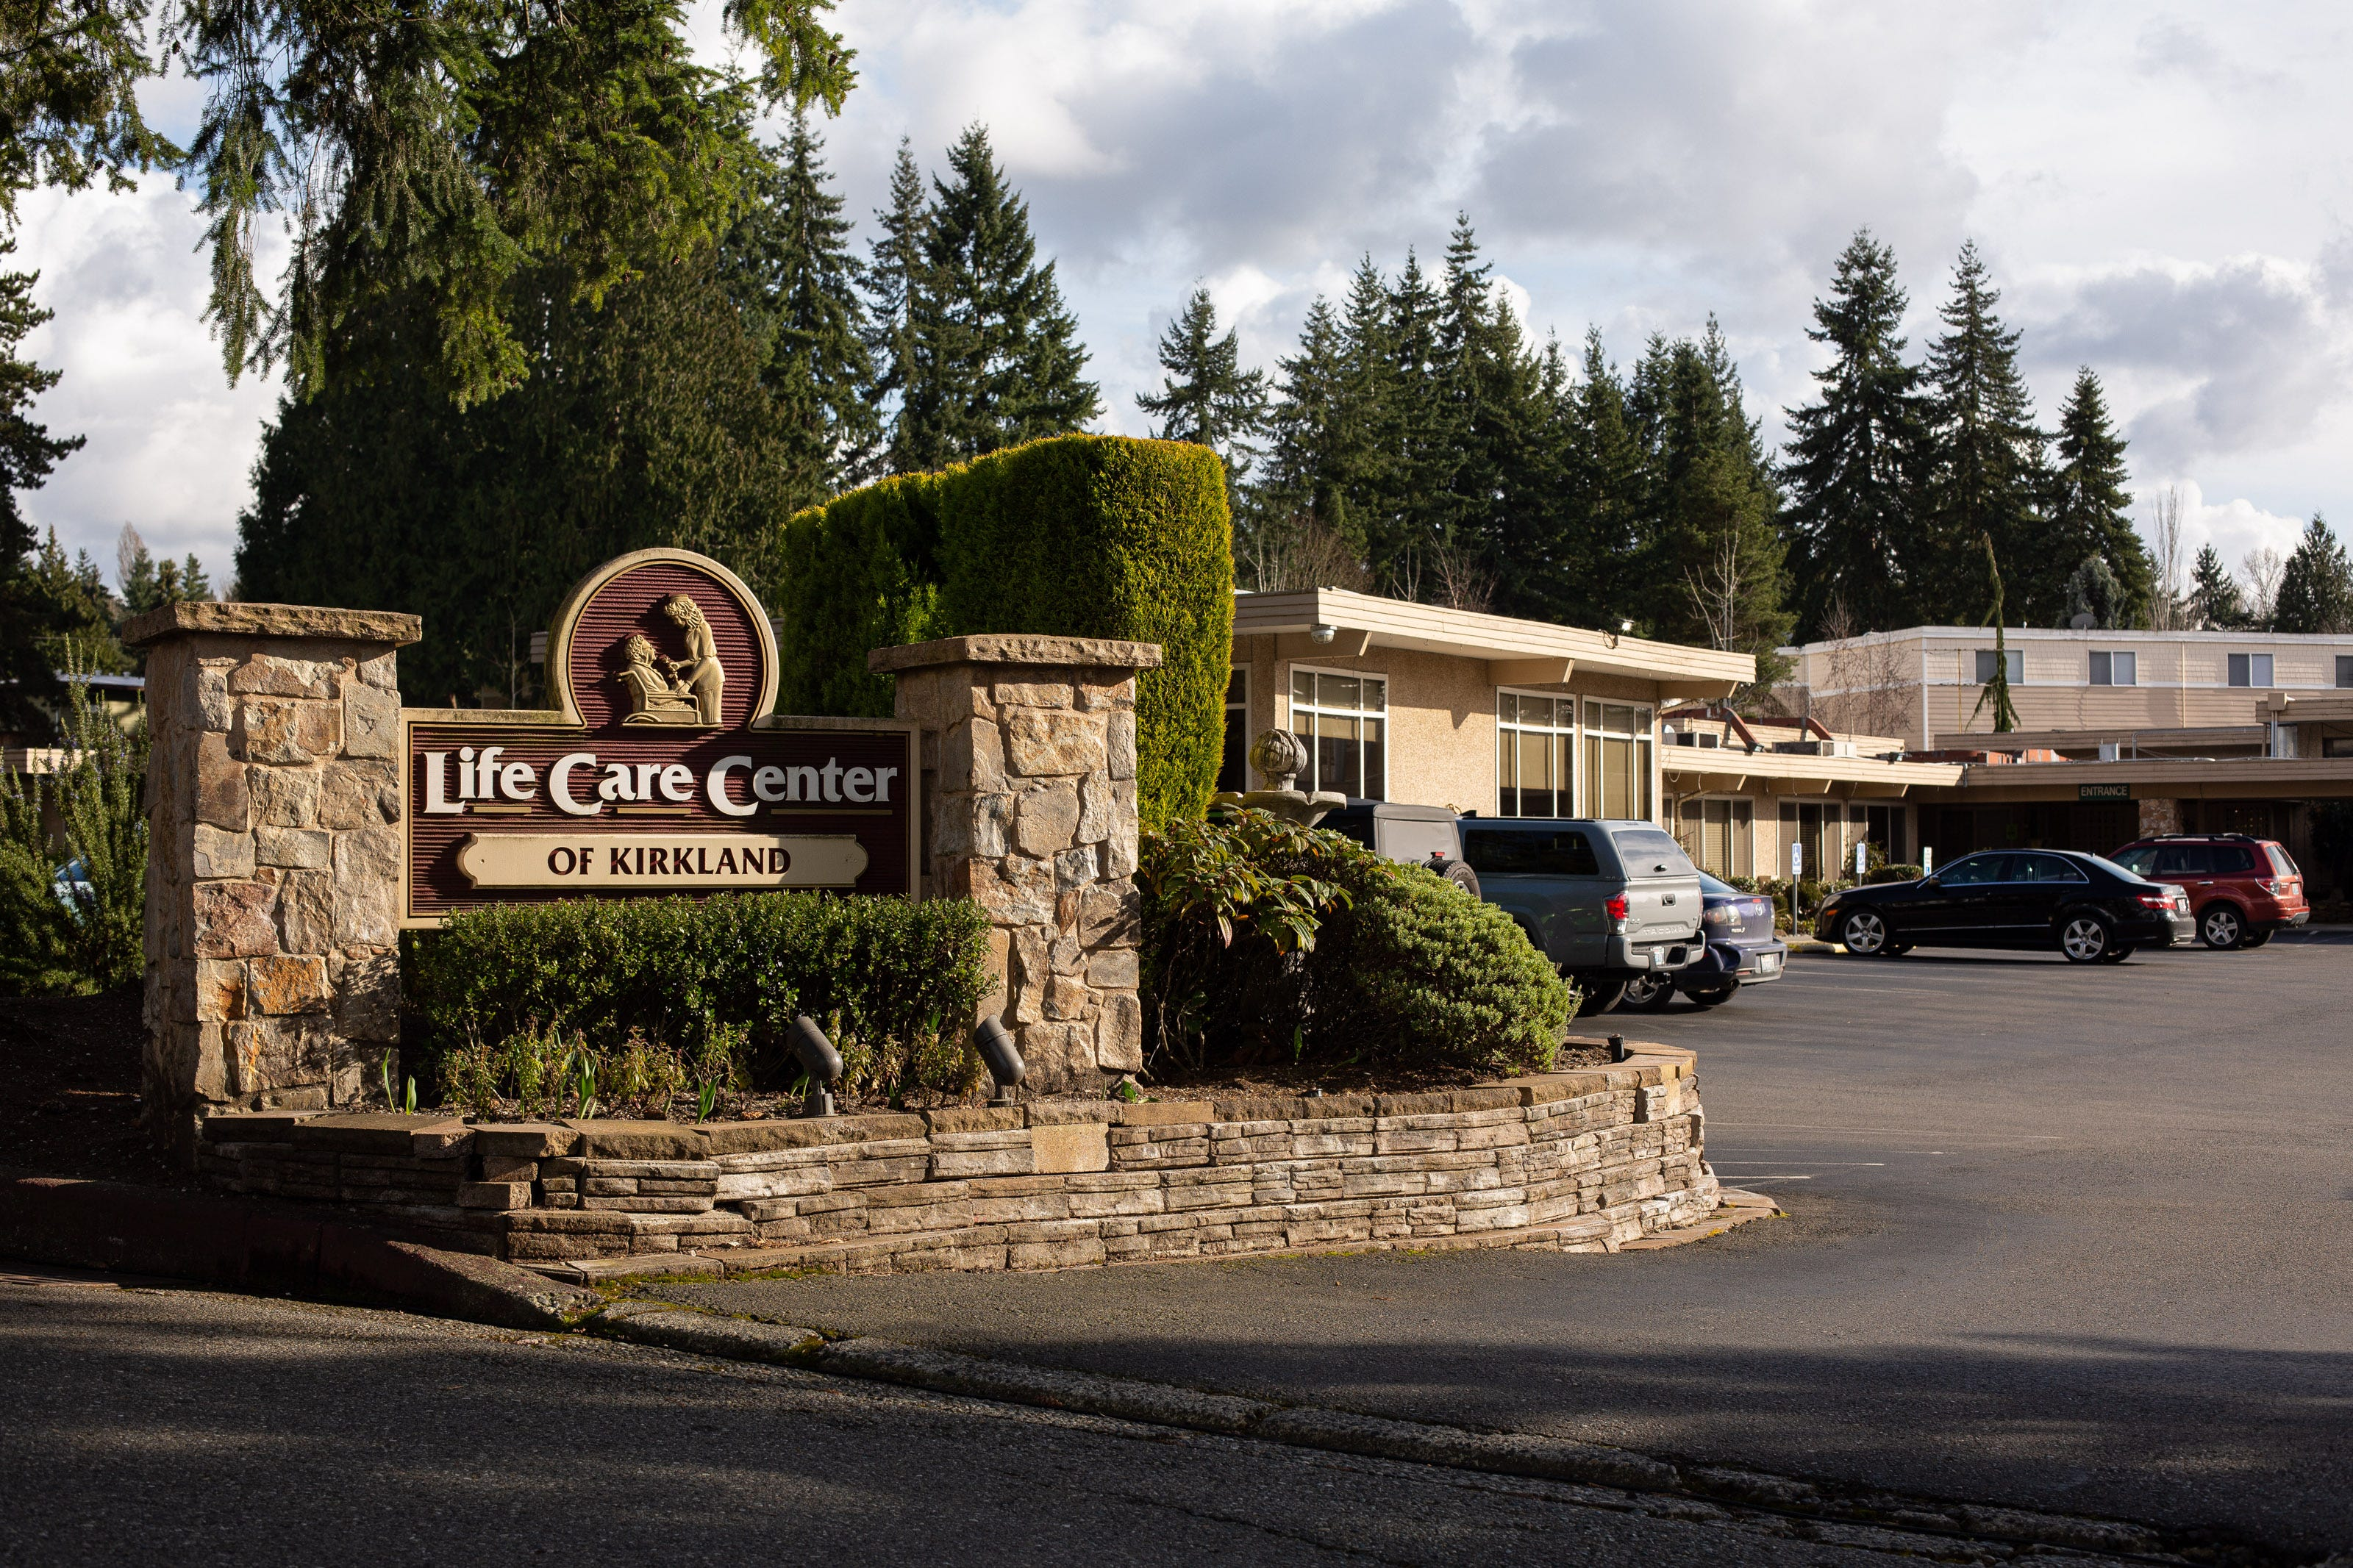 9 US coronavirus patients — including 4 who died — have ties to a nursing home near Seattle. Here's how the outbreak may have spread in Washington.